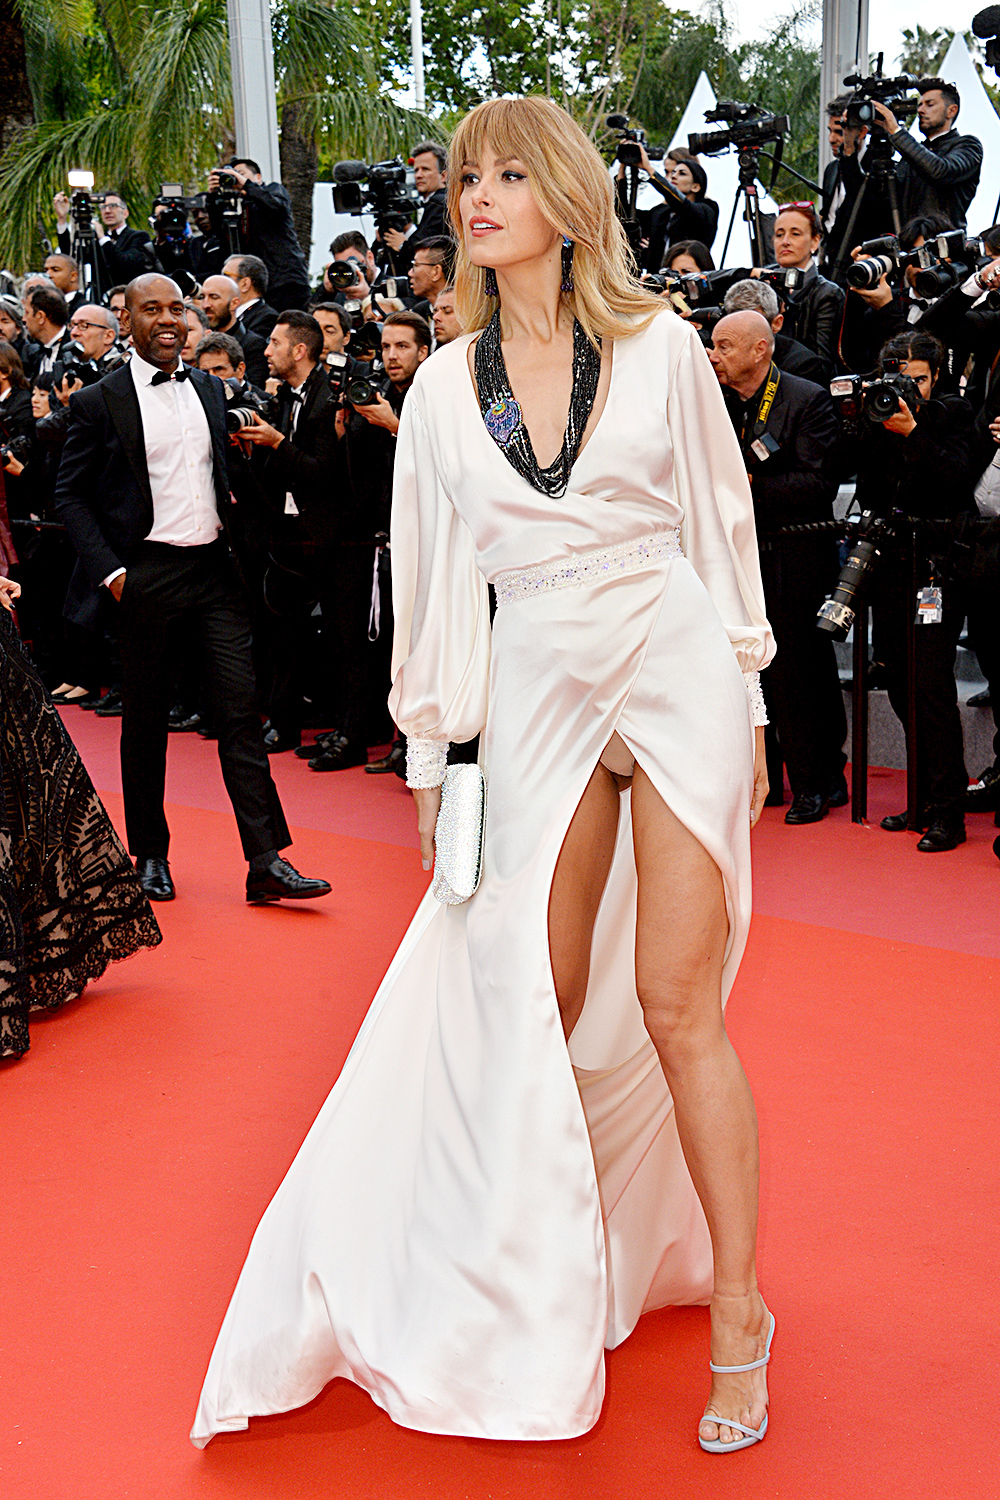 Petra Nemcova Flashes Underwear In Major Wardrobe Malfunction At Cannes